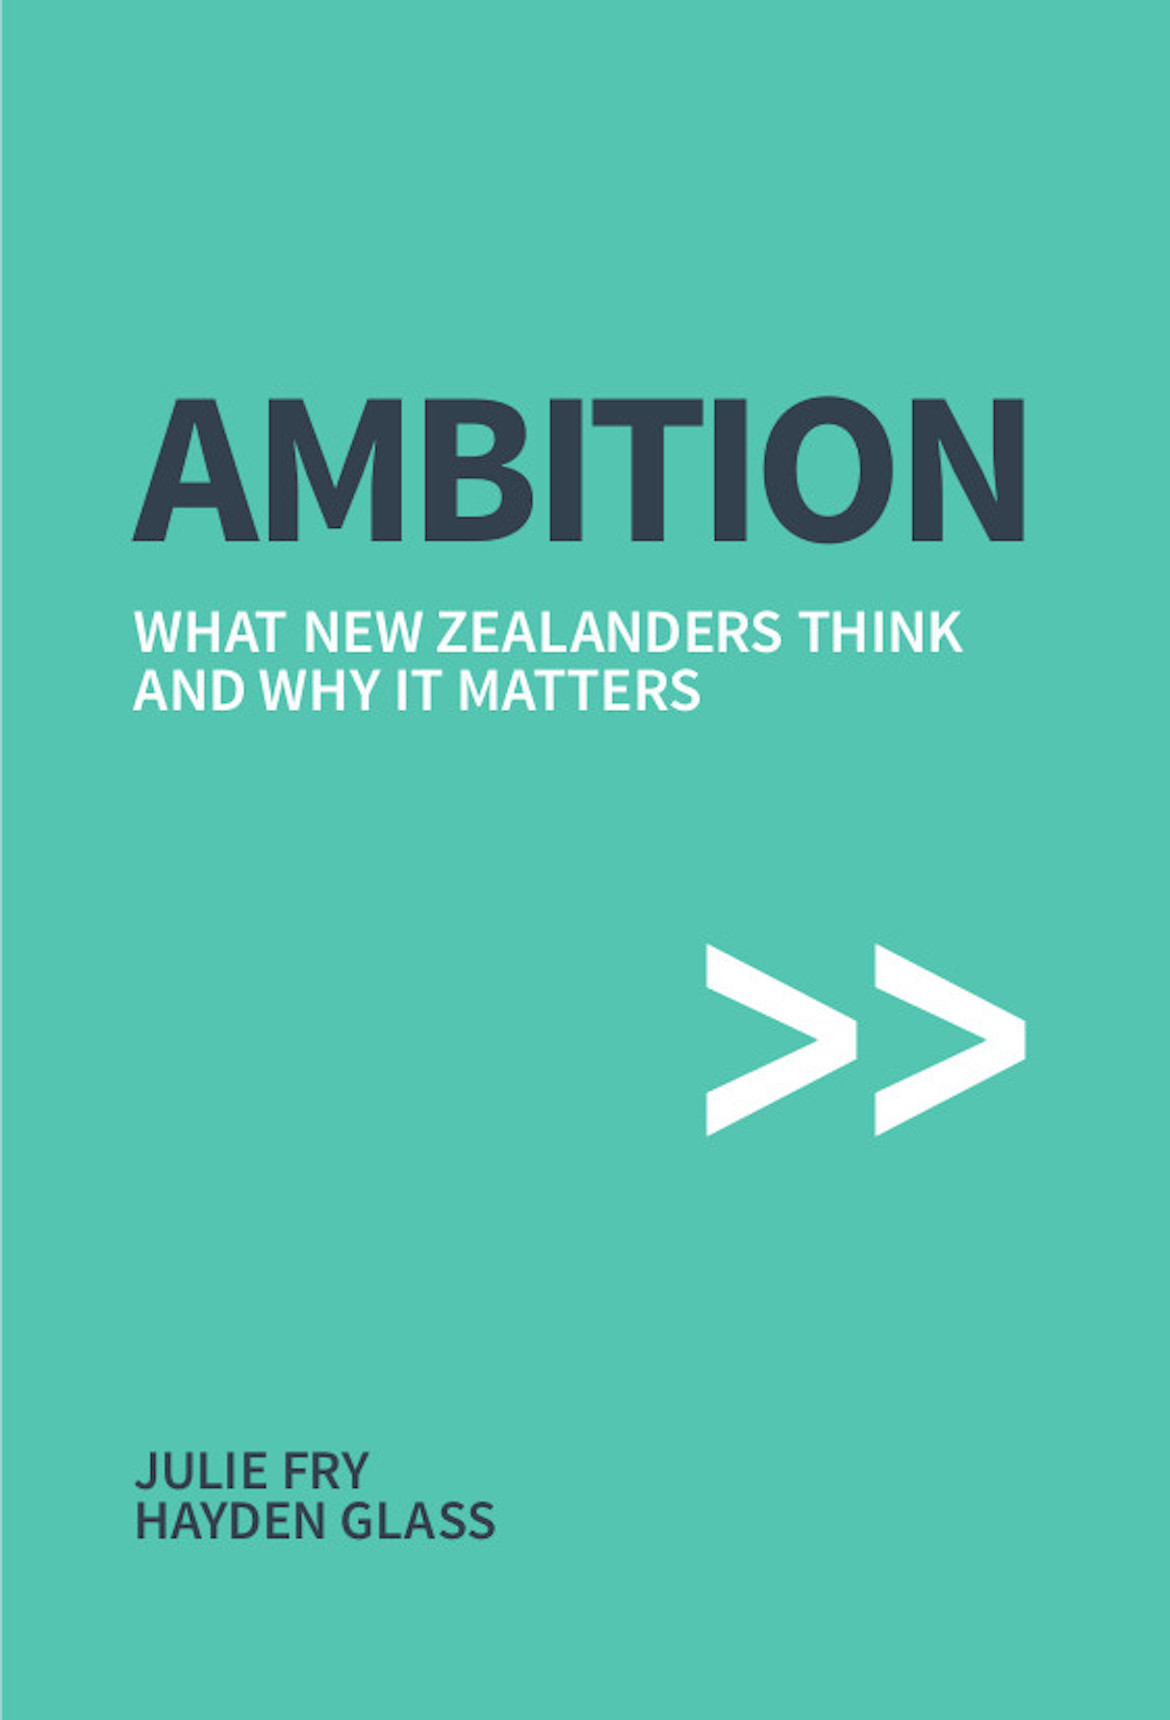 Ambition cover final.pdf 1170px copy.jpg